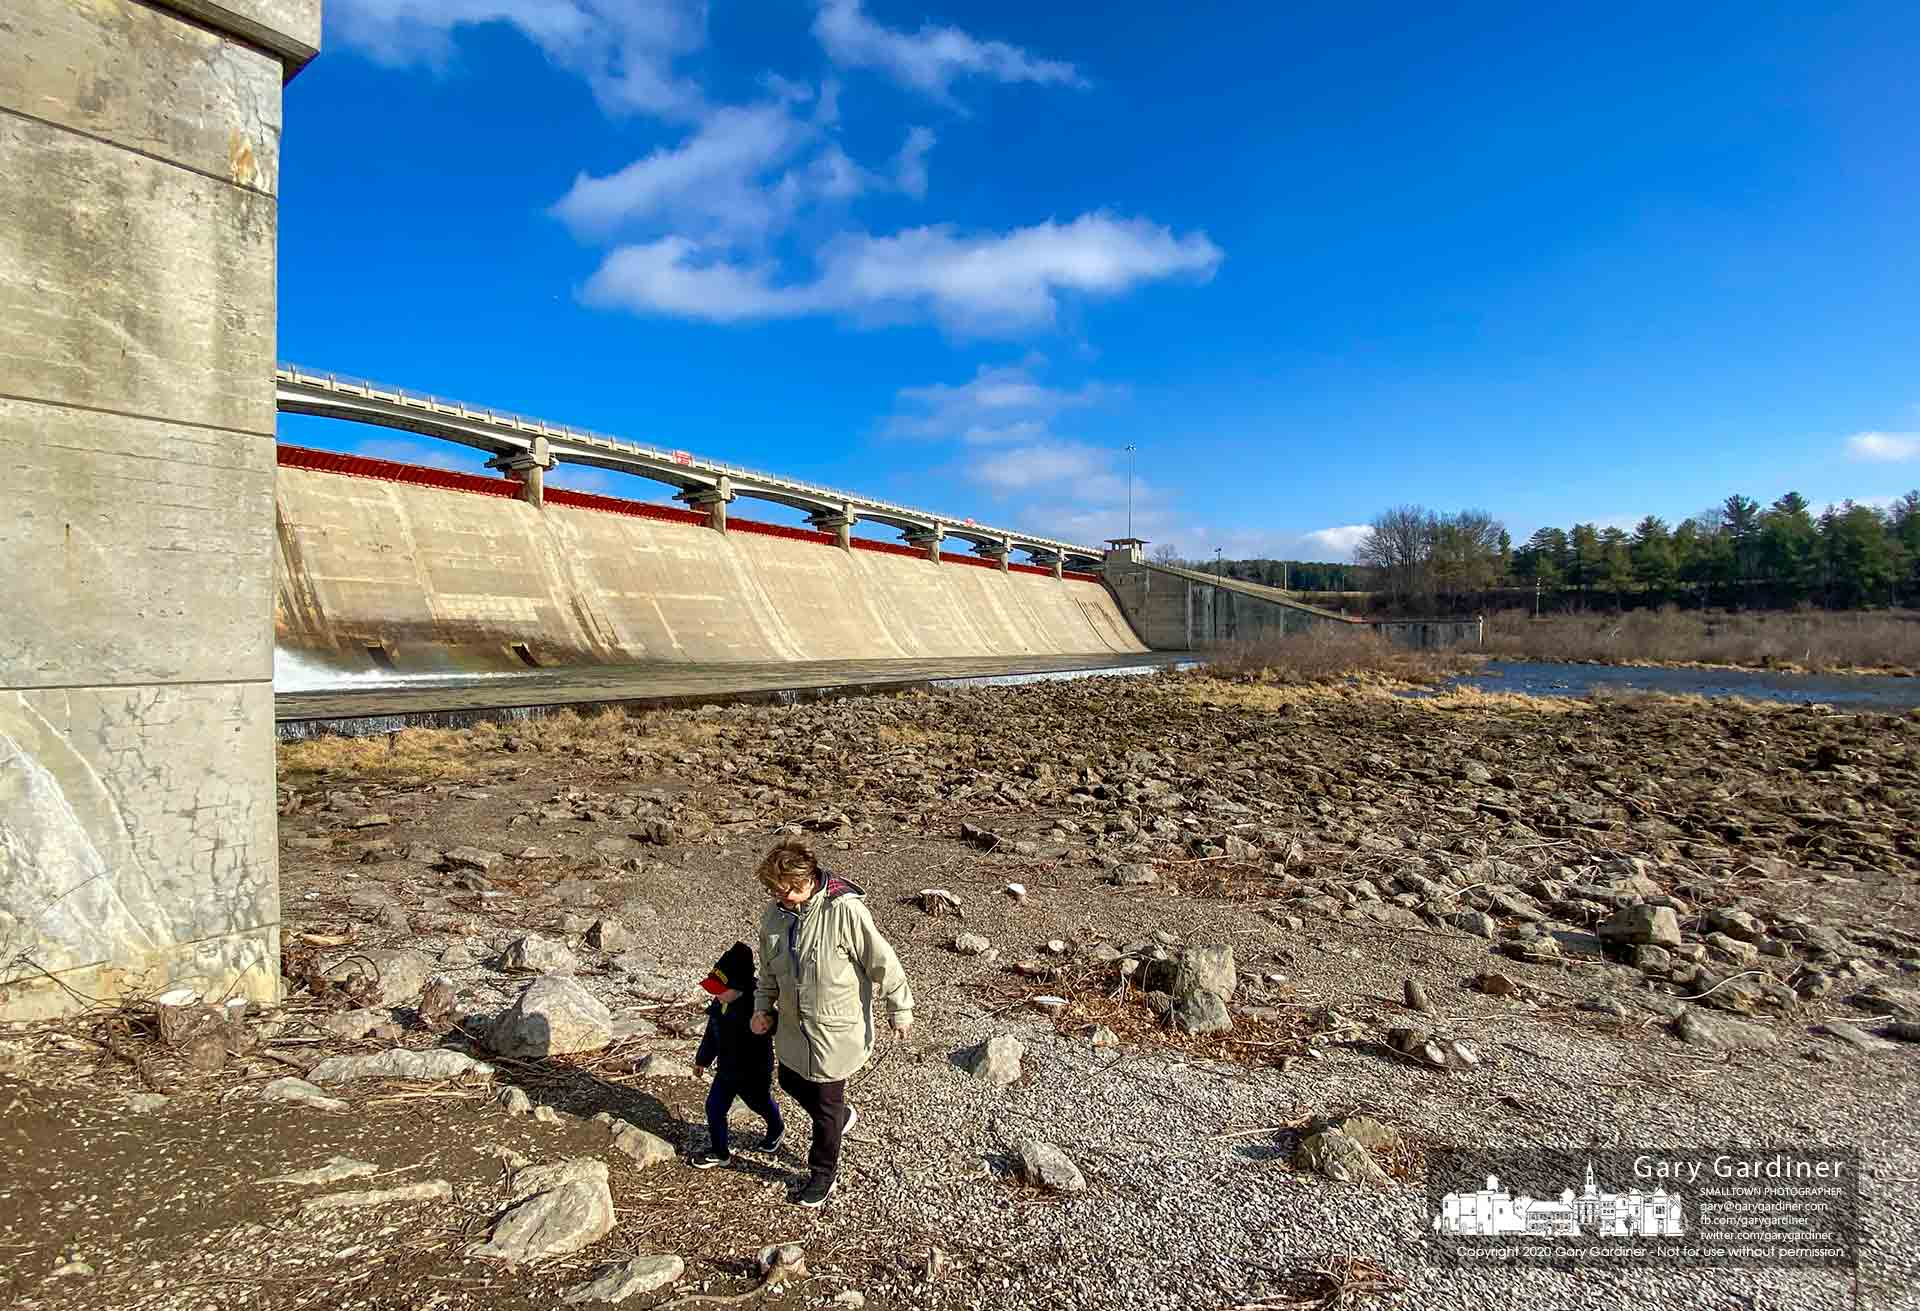 A woman and her grandson walk back to the parking lot after taking a closeup view of the base of Hoover Dam where the reservoir level has kept overflow at a minimum. My Final Photo for Jan. 14, 2020.